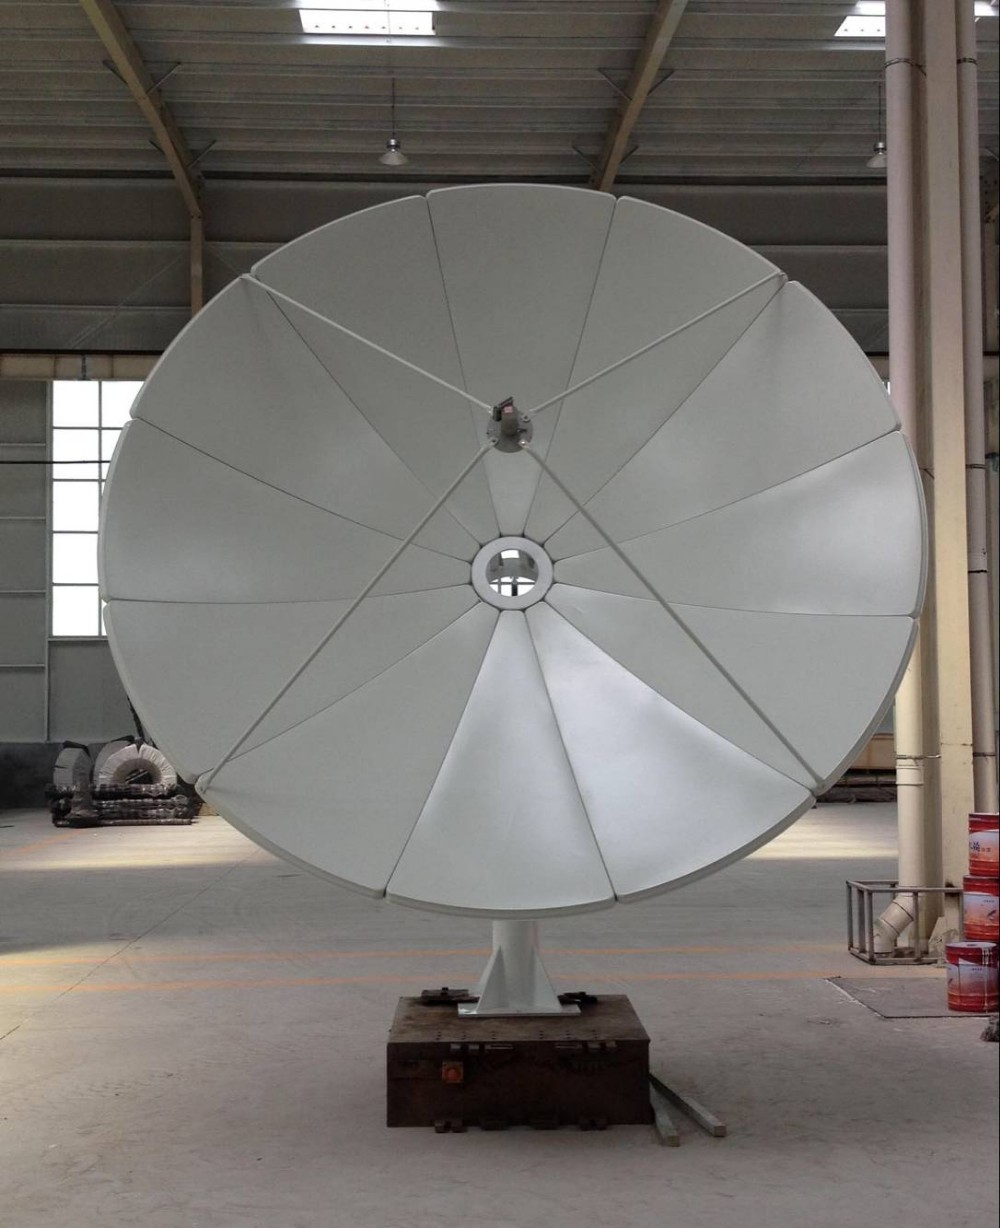 hd digital tv c band satellite dish antenna steel plate panel solid paraboloid. Black Bedroom Furniture Sets. Home Design Ideas